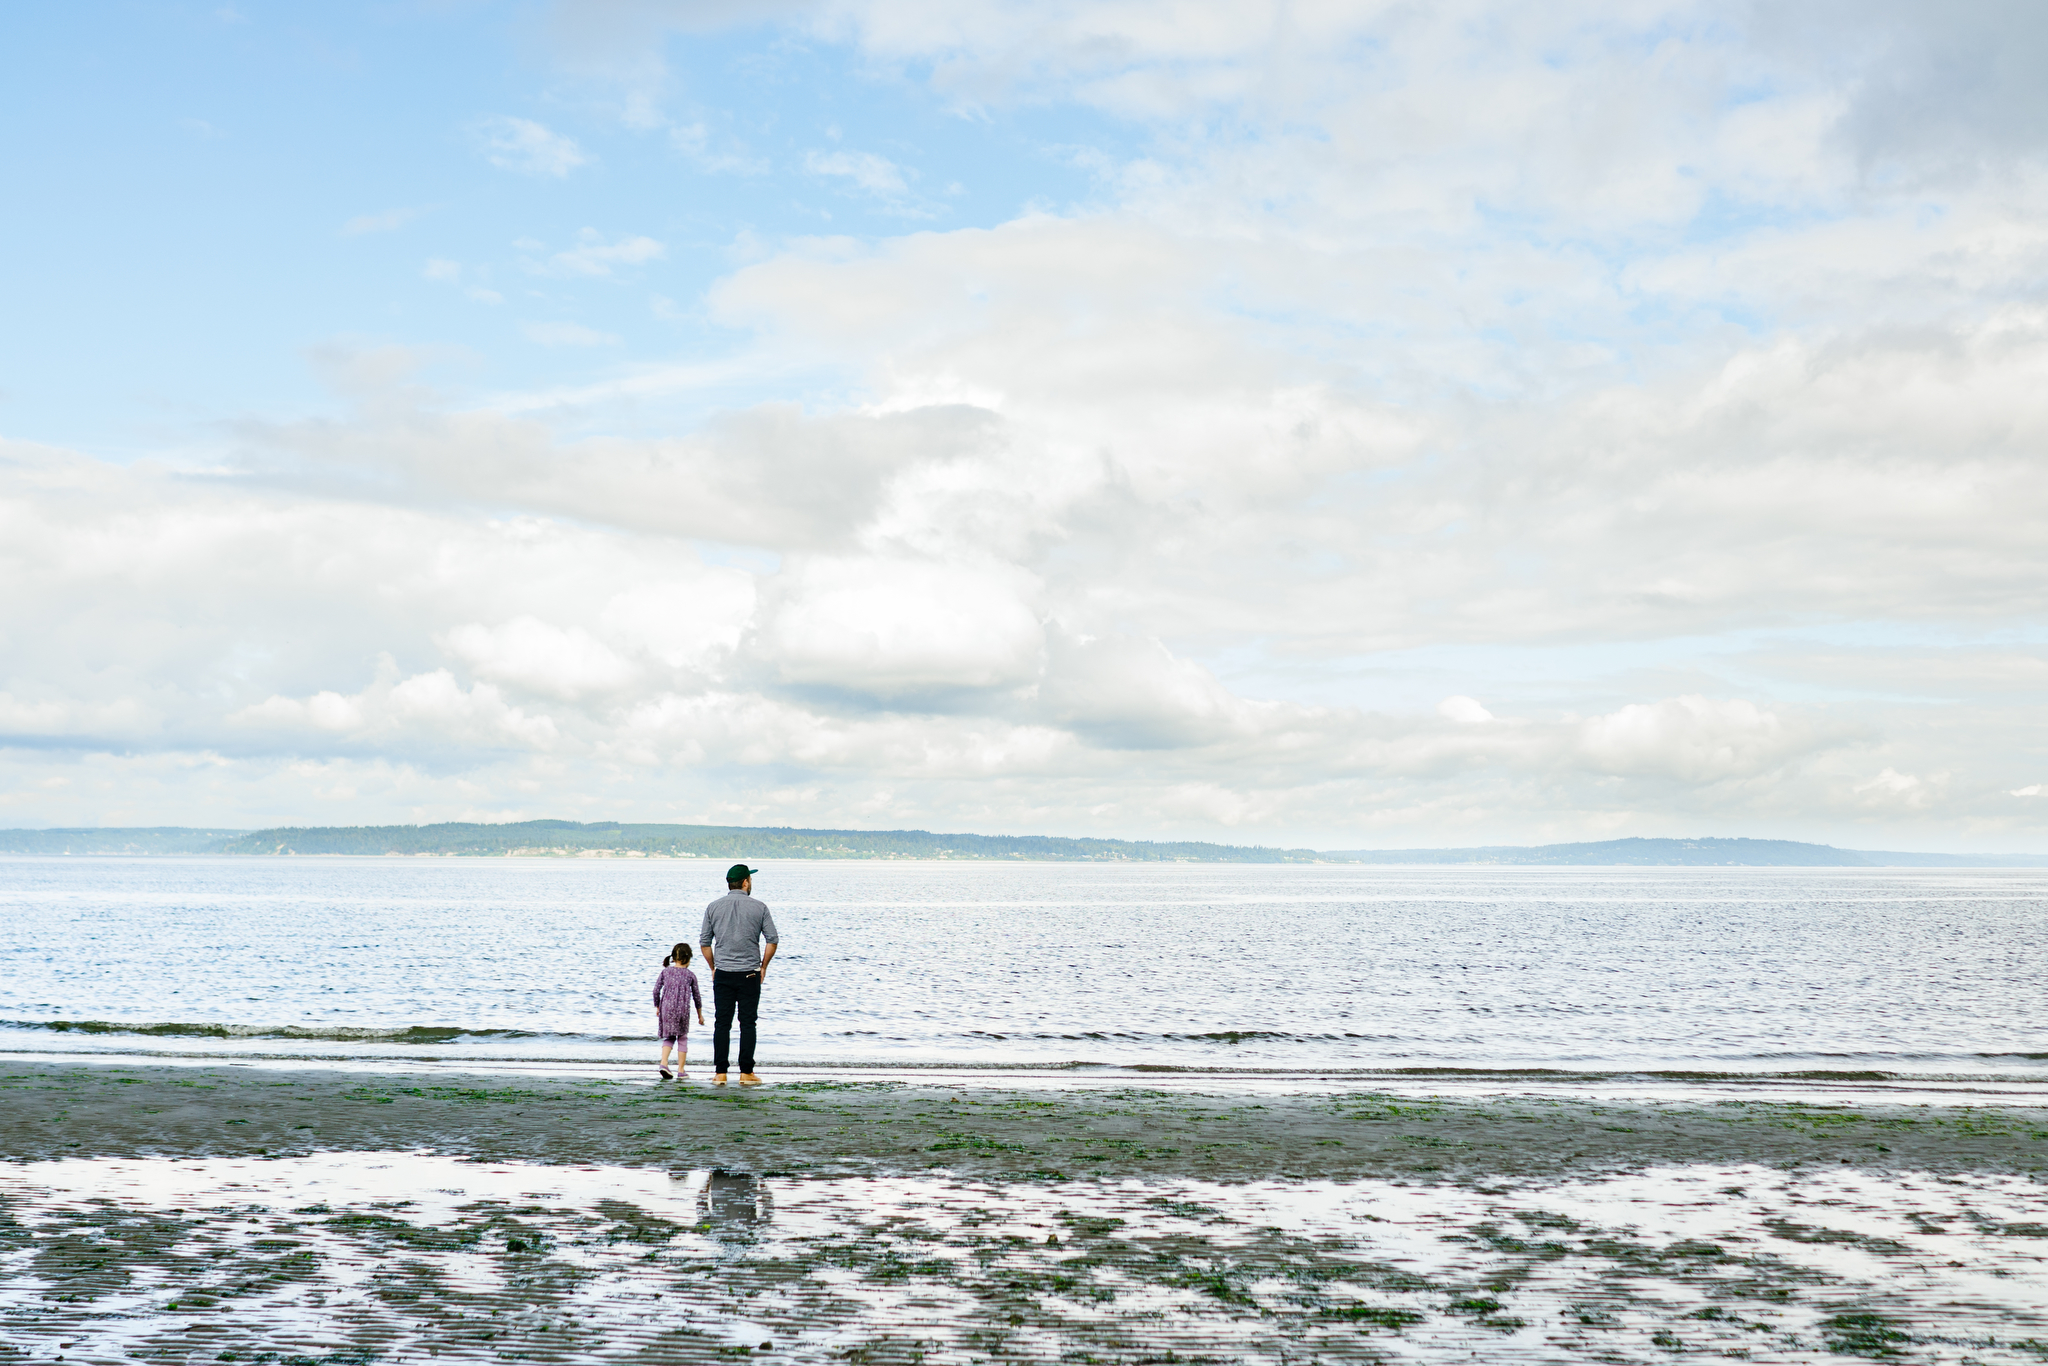 Carkeek Park Family Adventure Portrait Photographer in Seattle, Washington